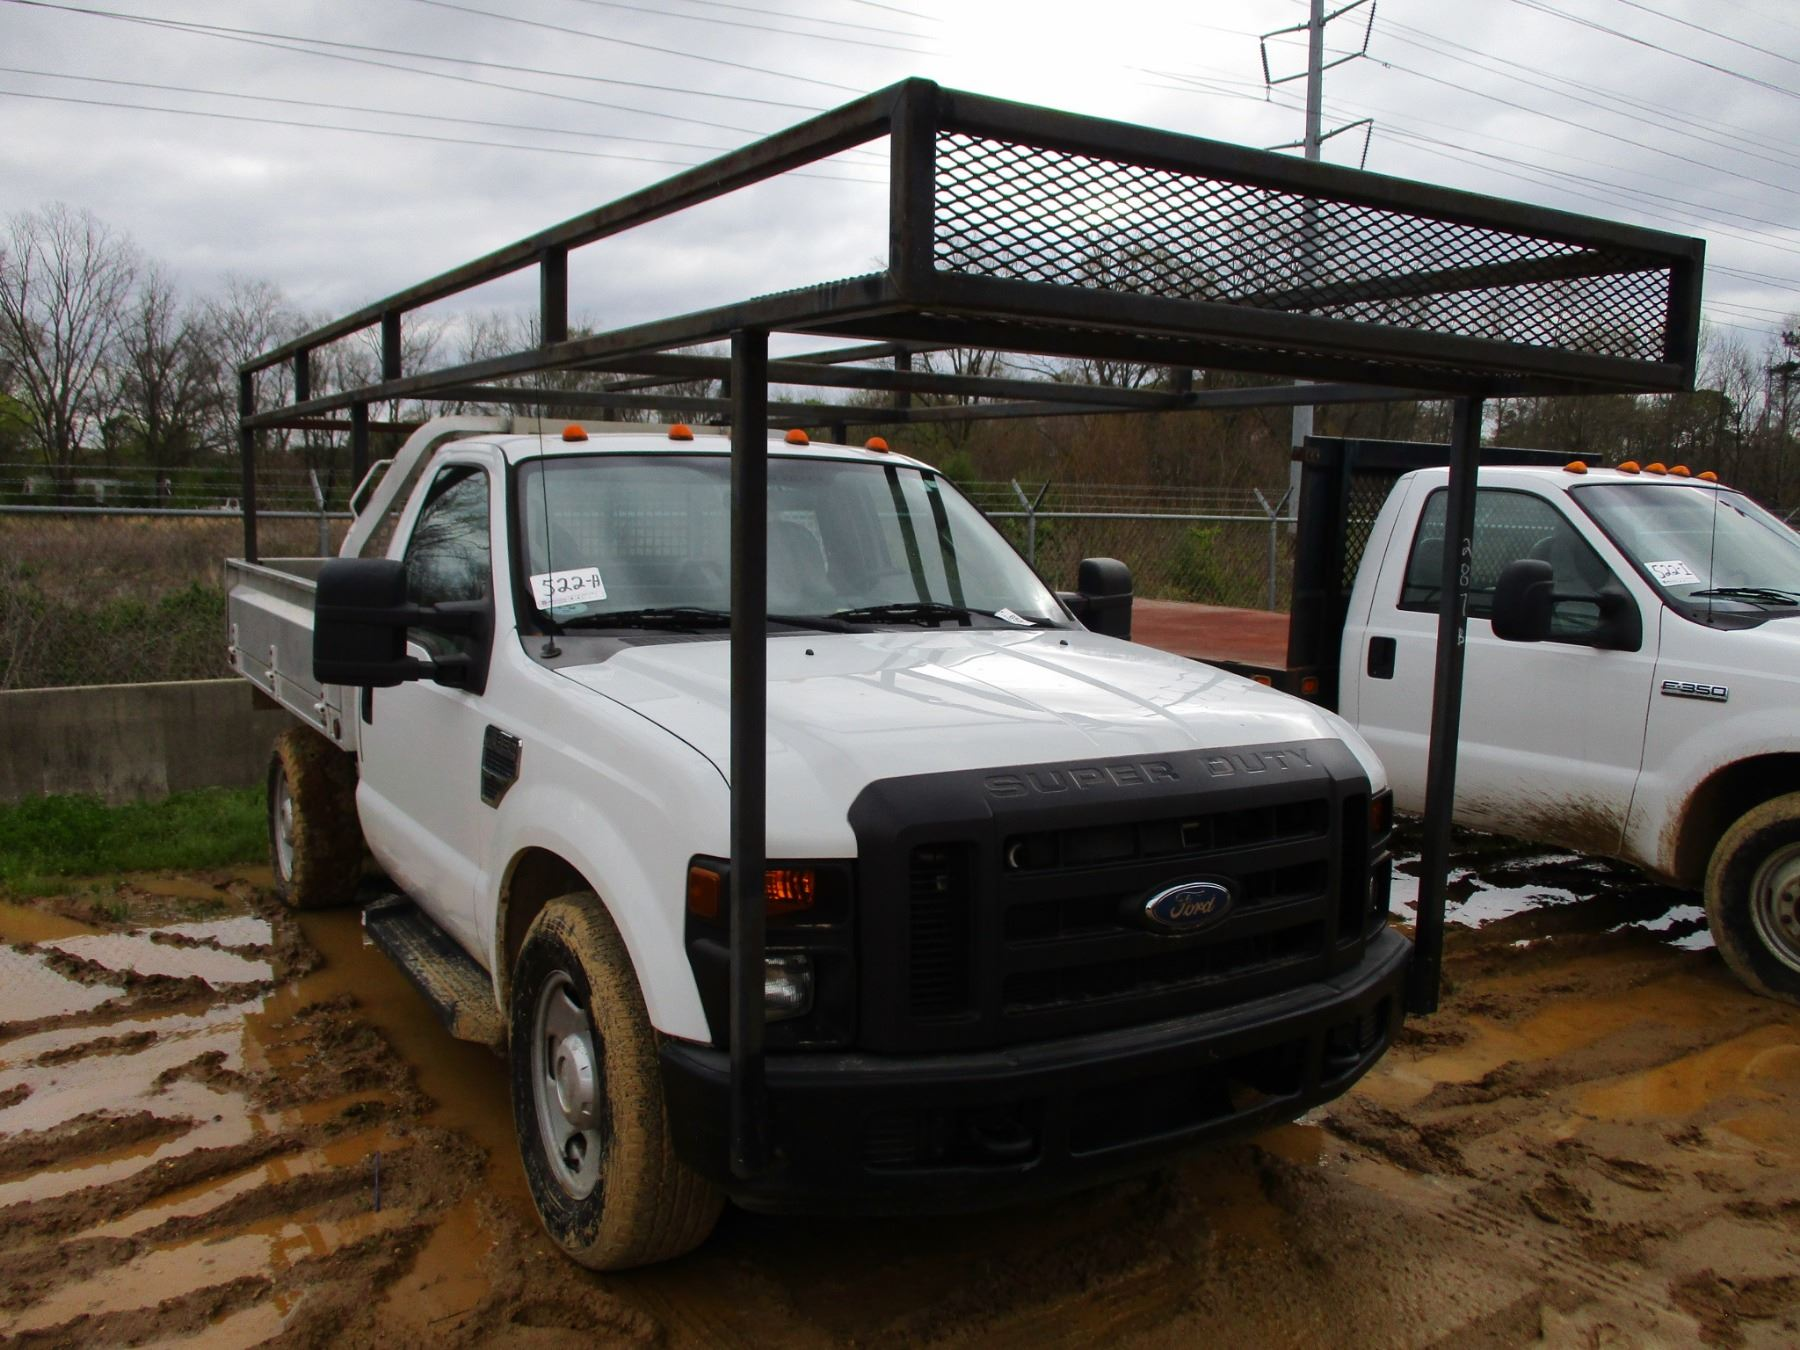 2008 FORD F350 FLATBED TRUCK VIN SN 1FDSF EA S A V8 GAS